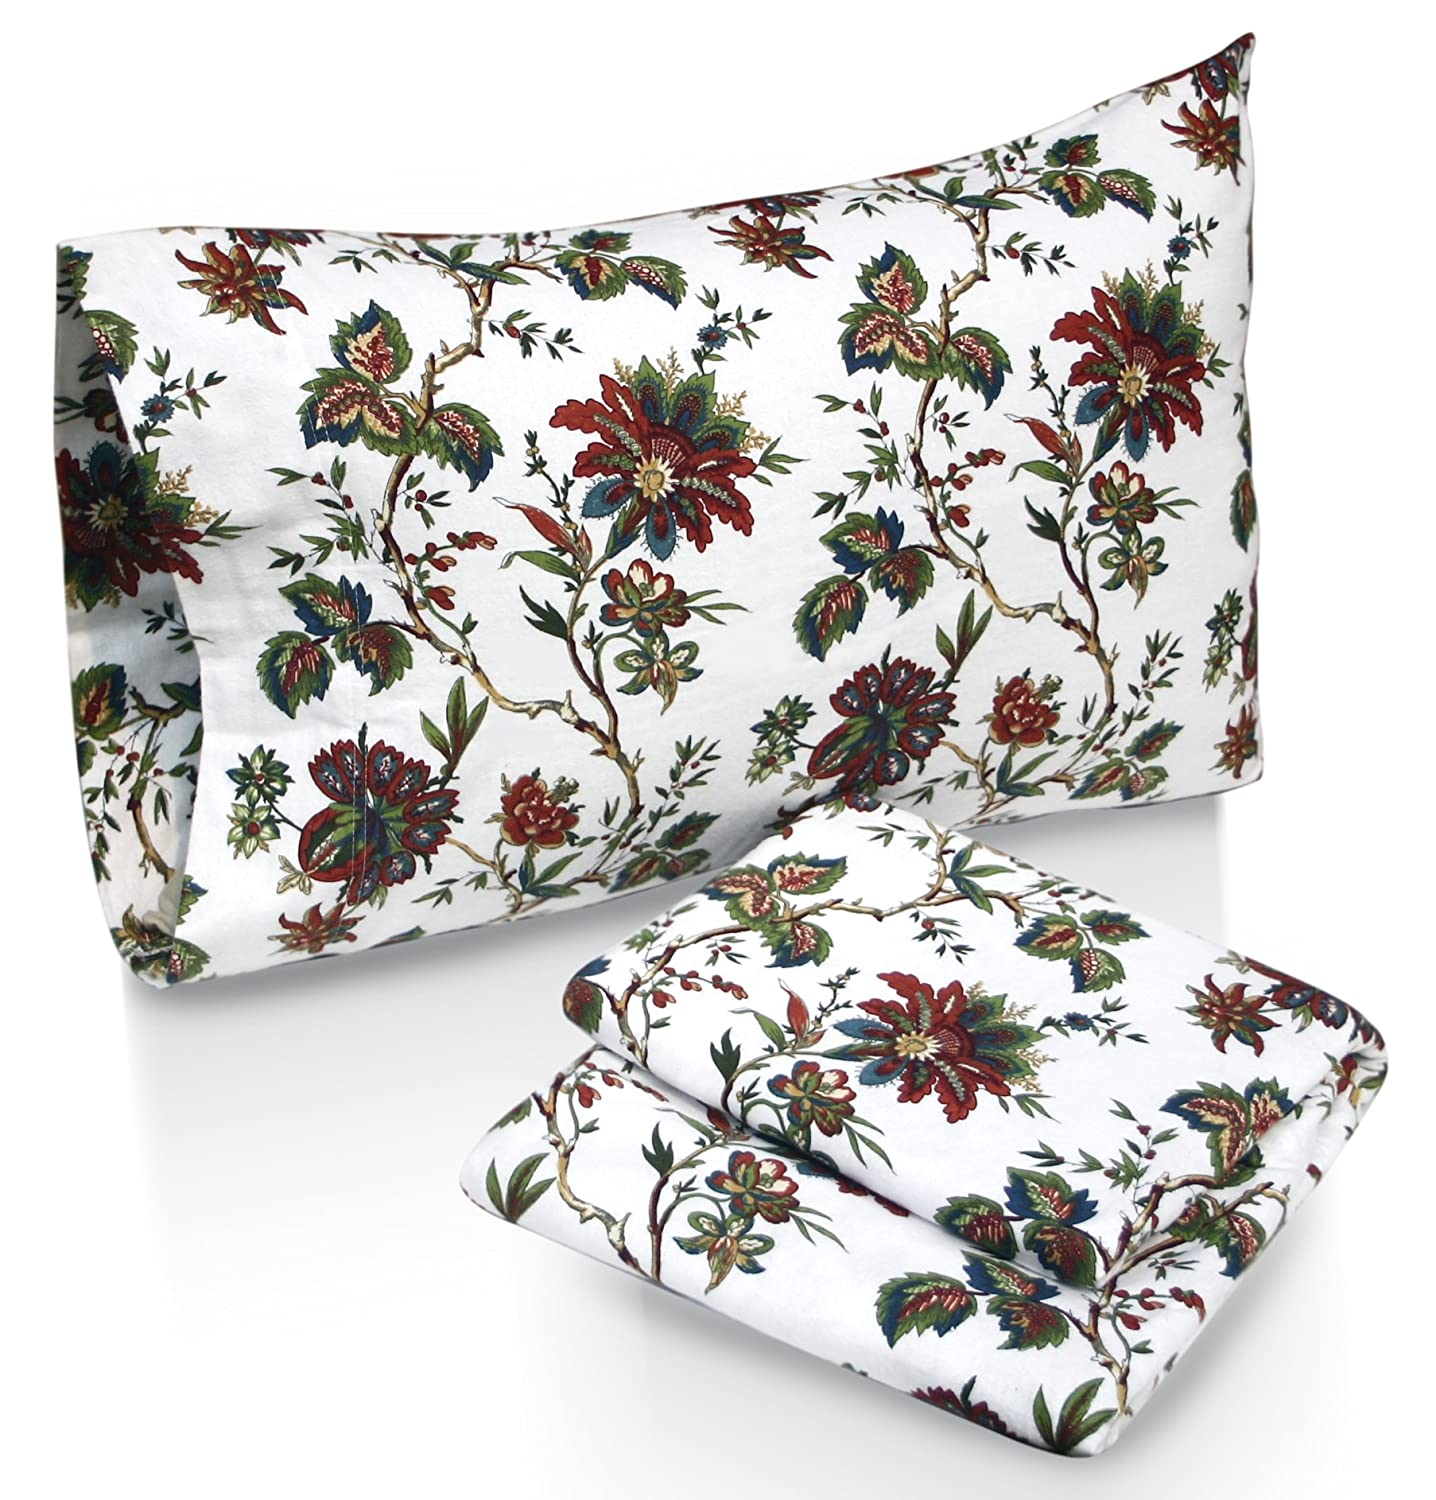 Flannel Sheet Set with Pillowcase, California King